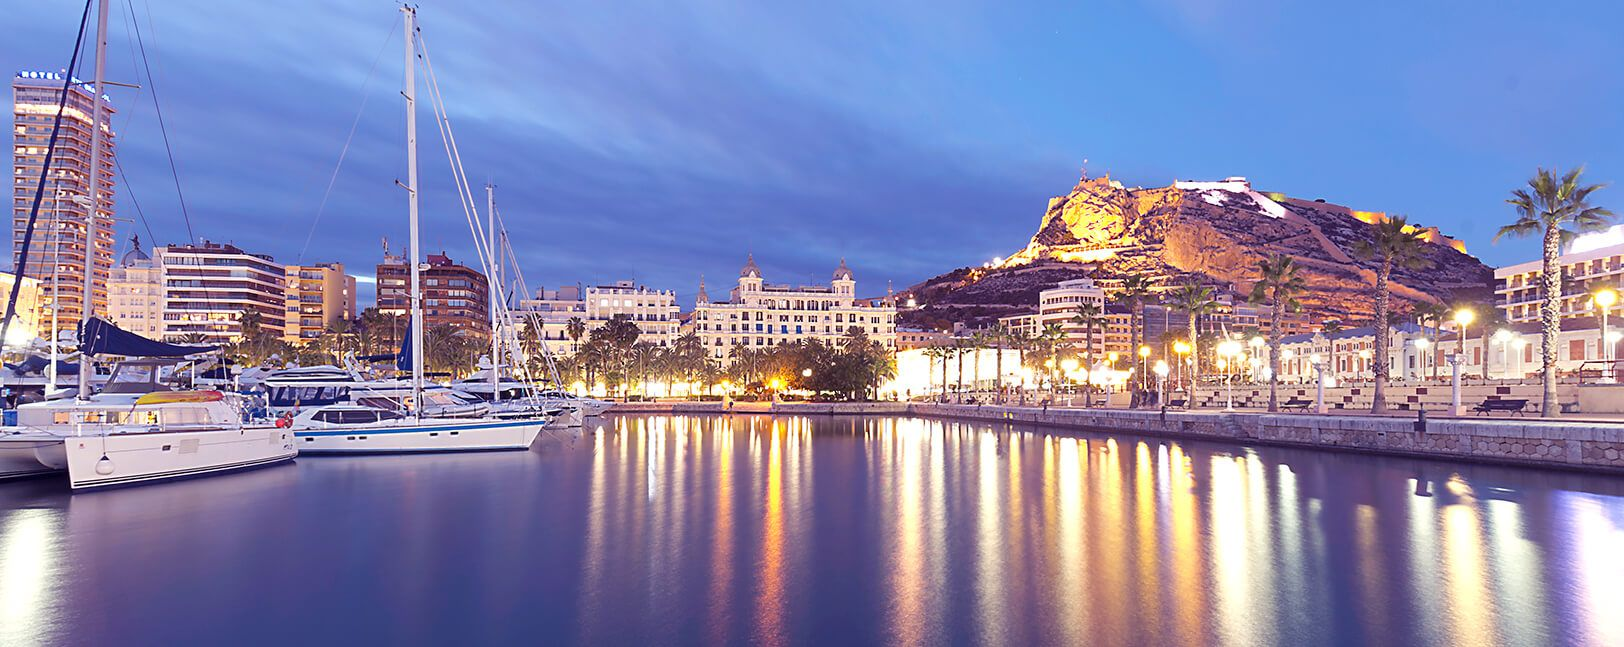 DMC Alicante - Corporate Events Management in Spain